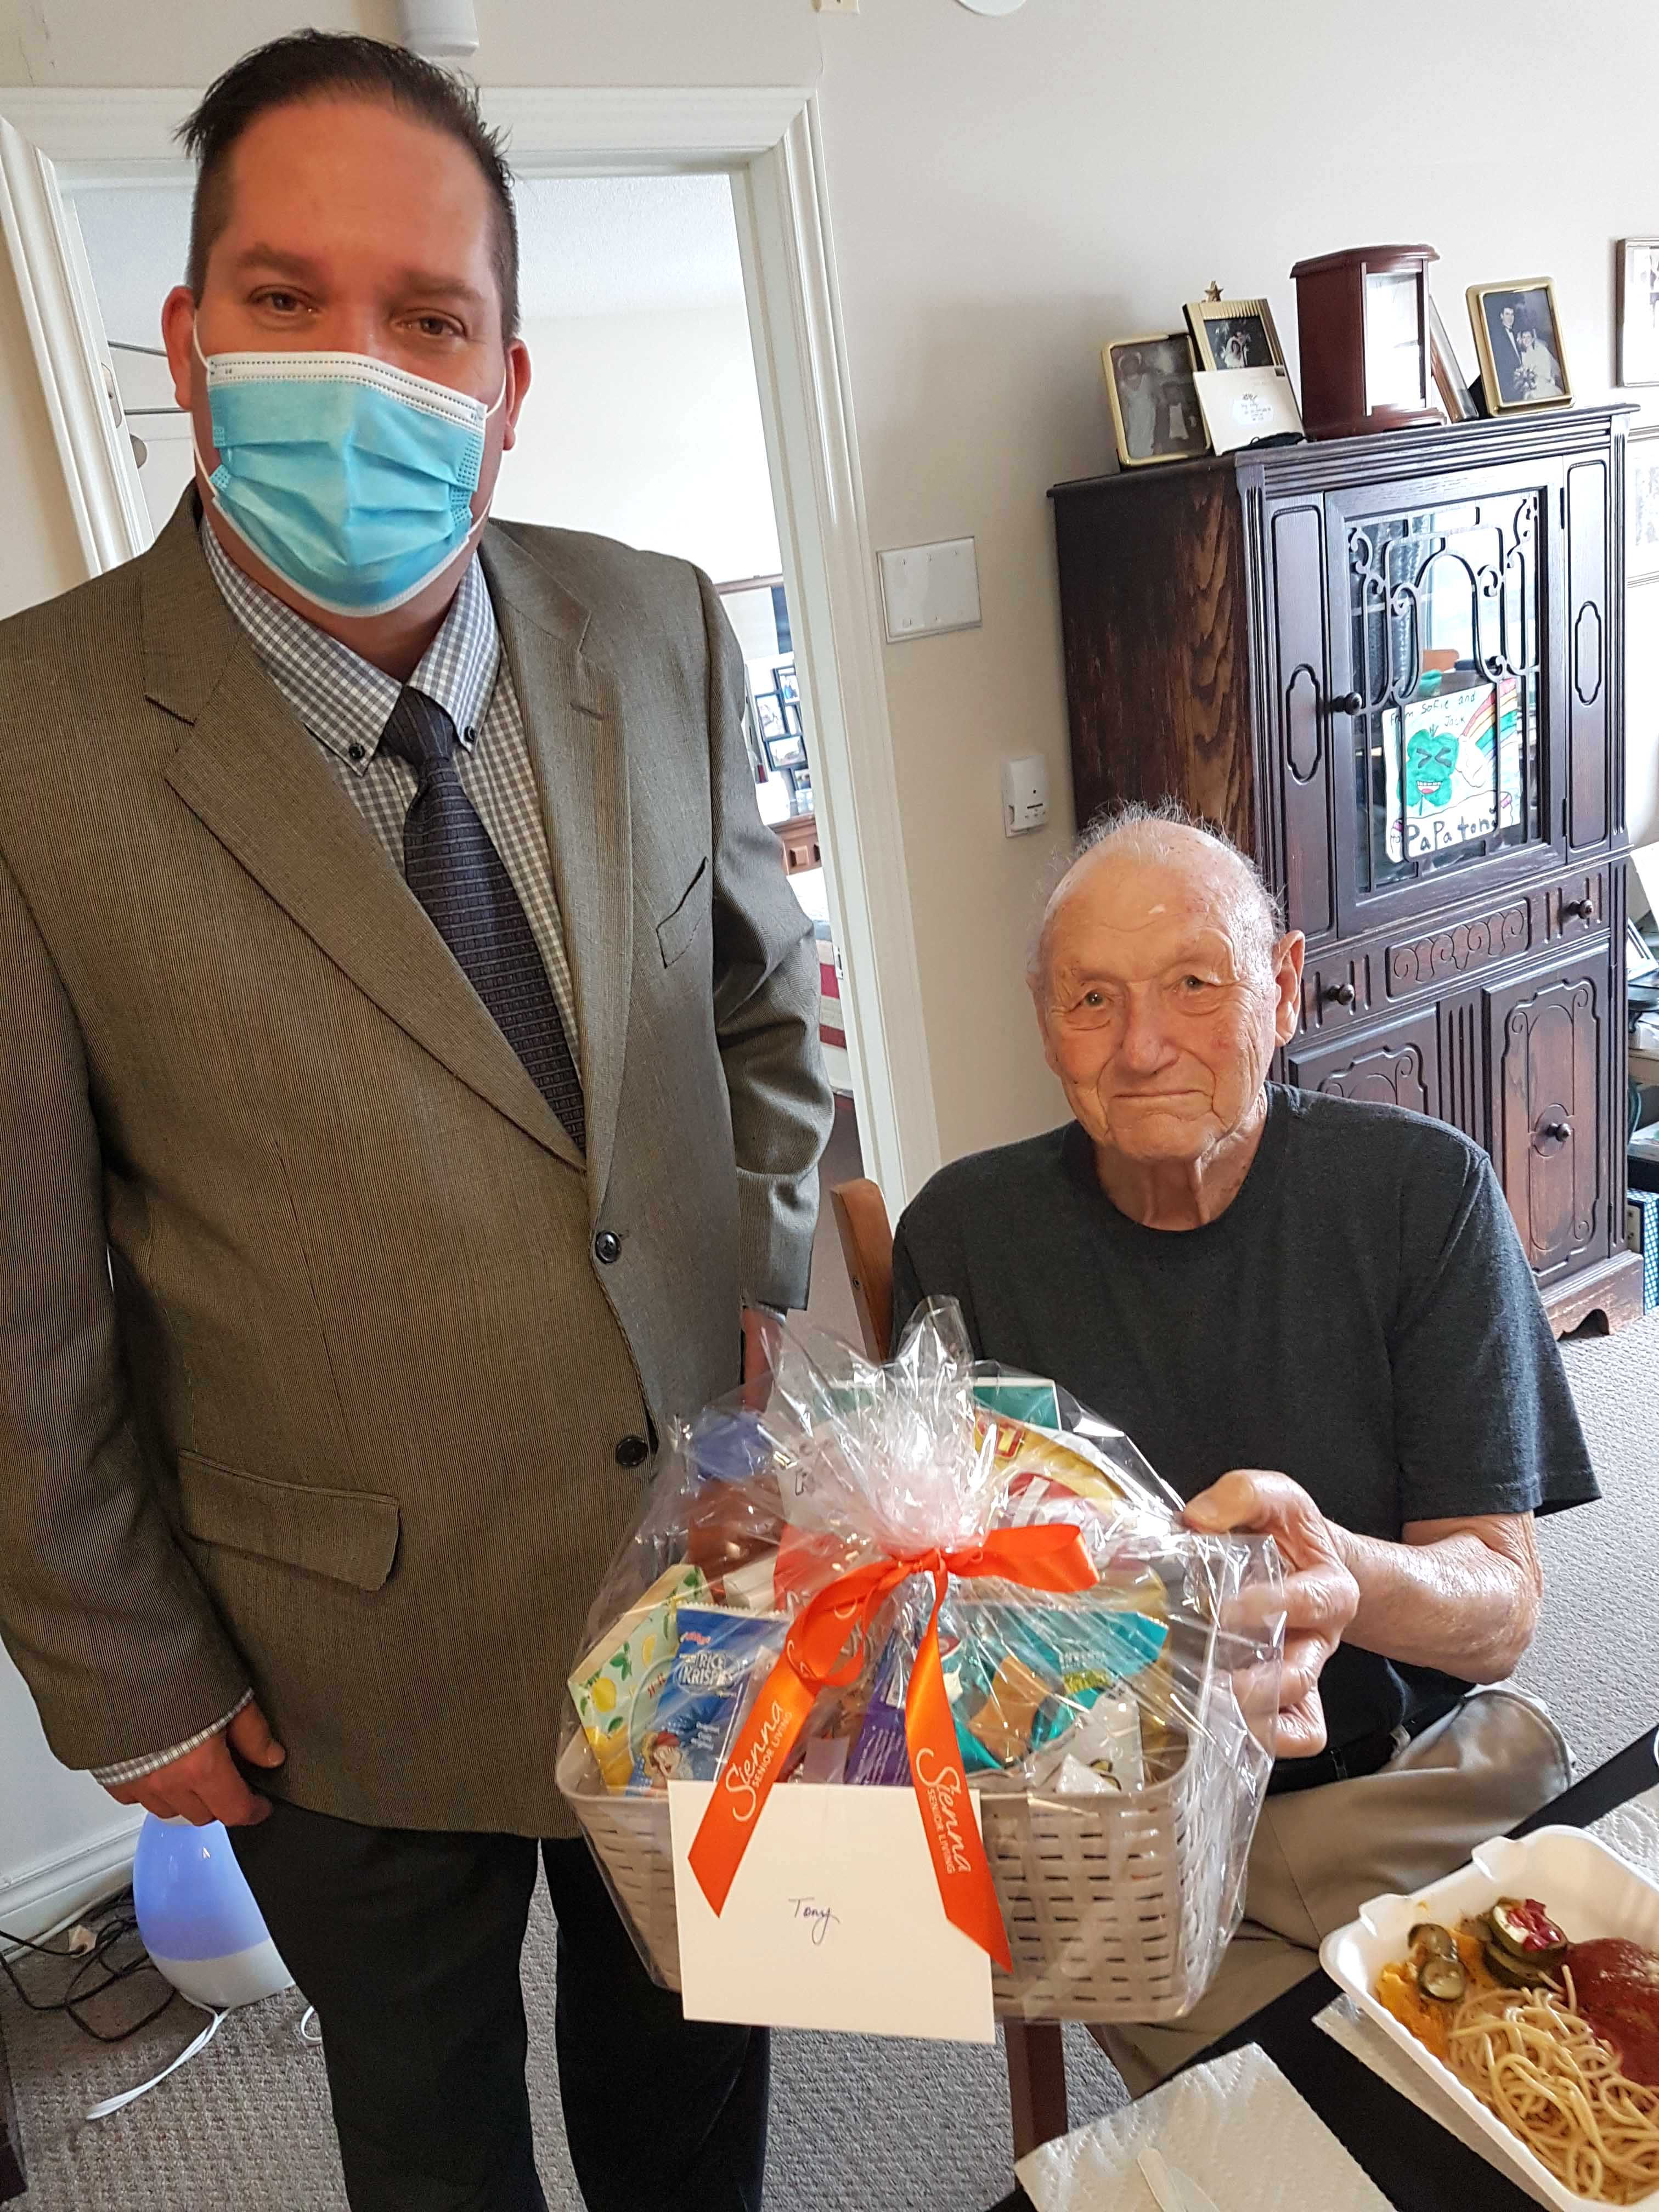 A resident and team member holding a gift basket.